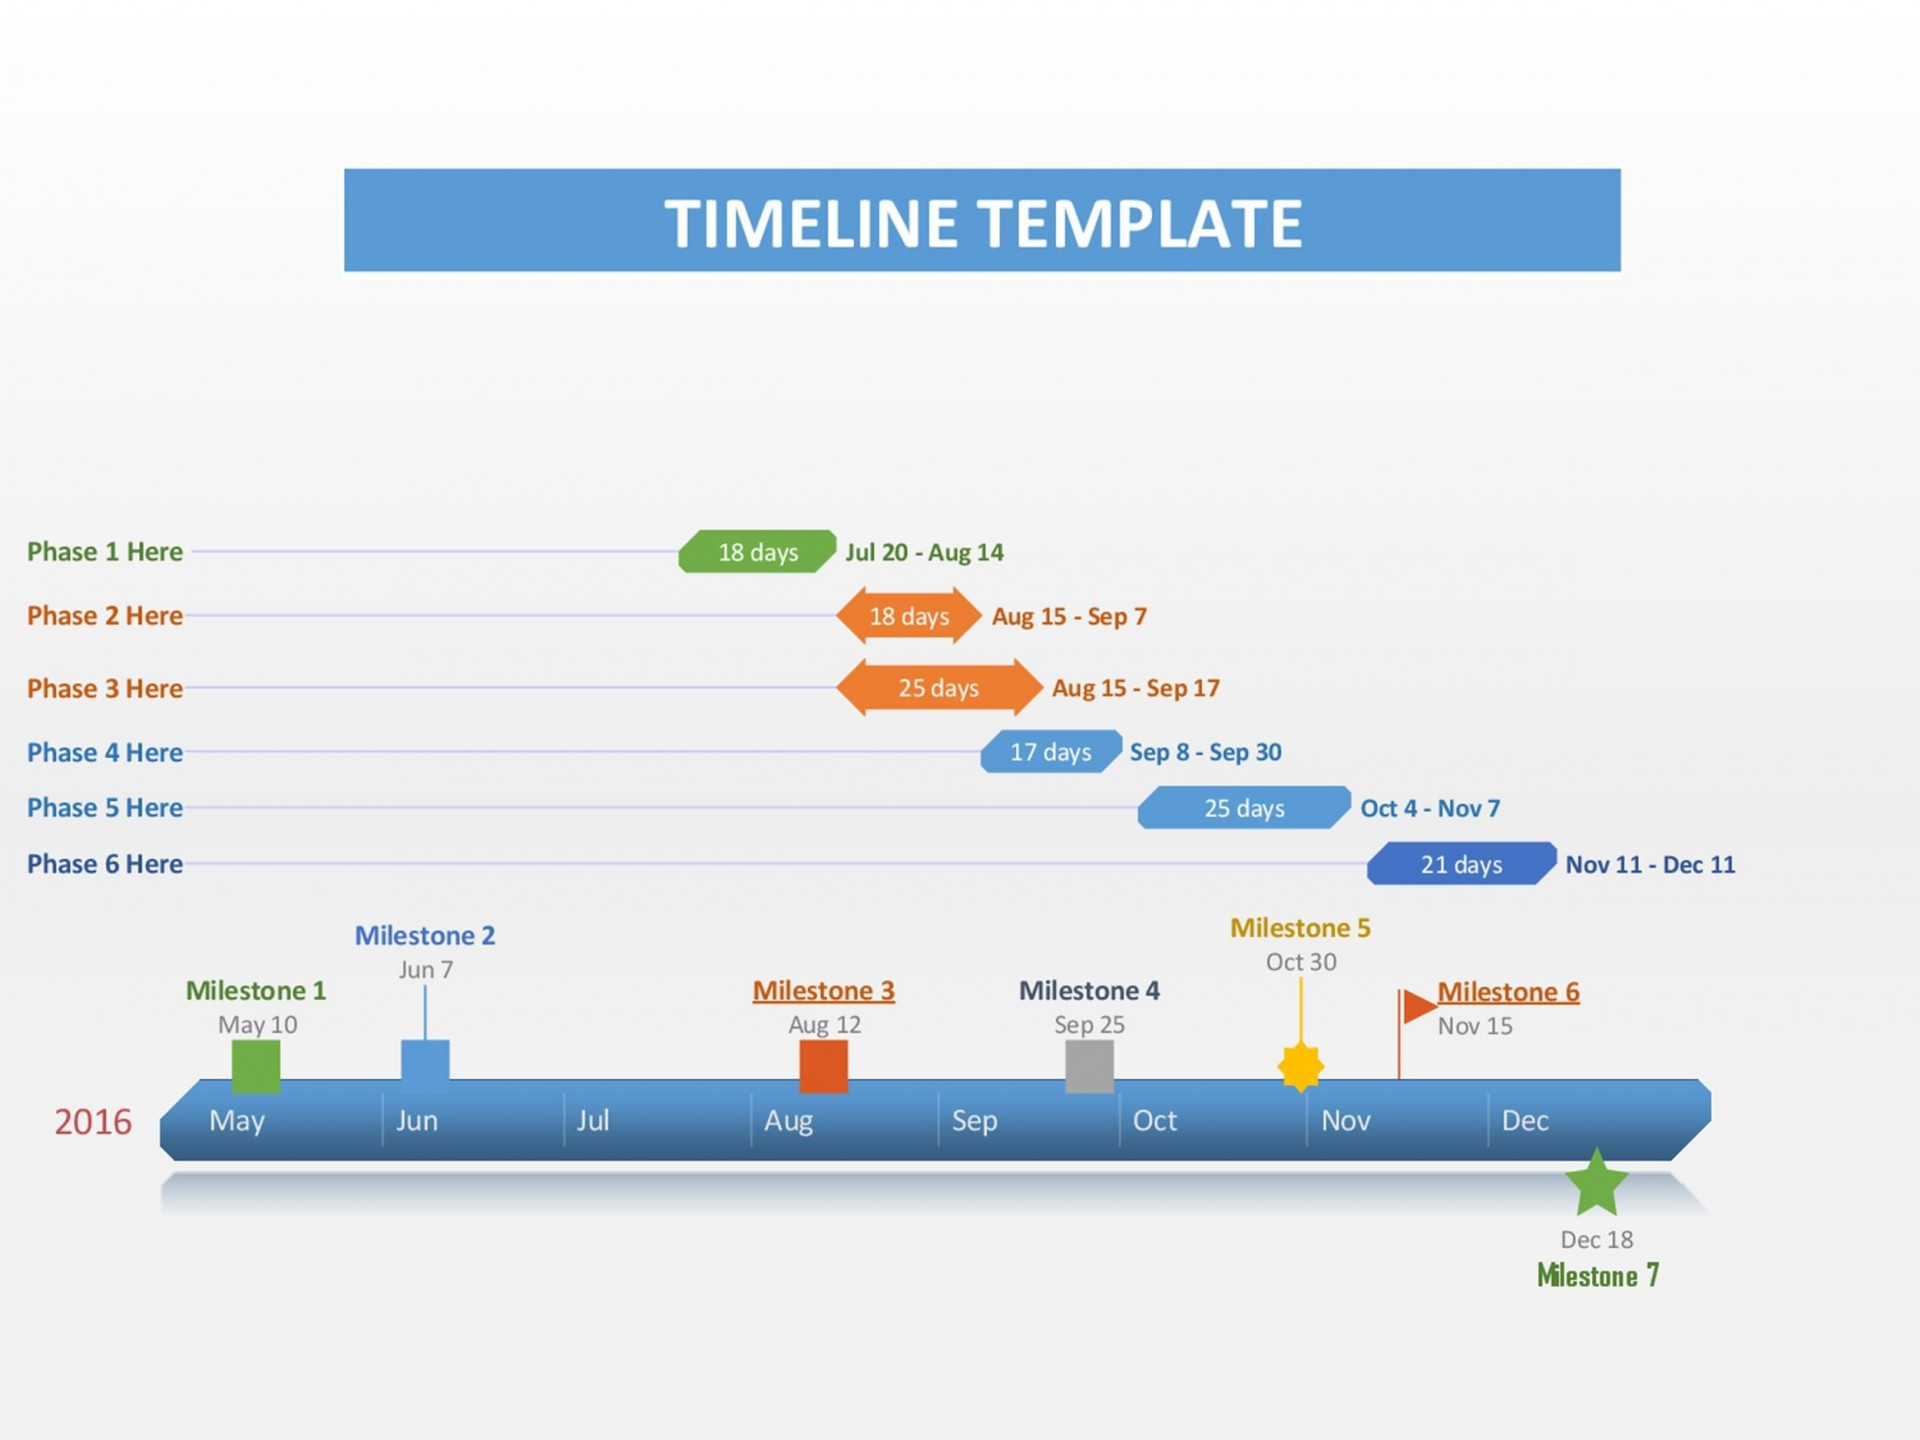 005 Magnificent Timeline Template For Word 2016 High Definition 1920